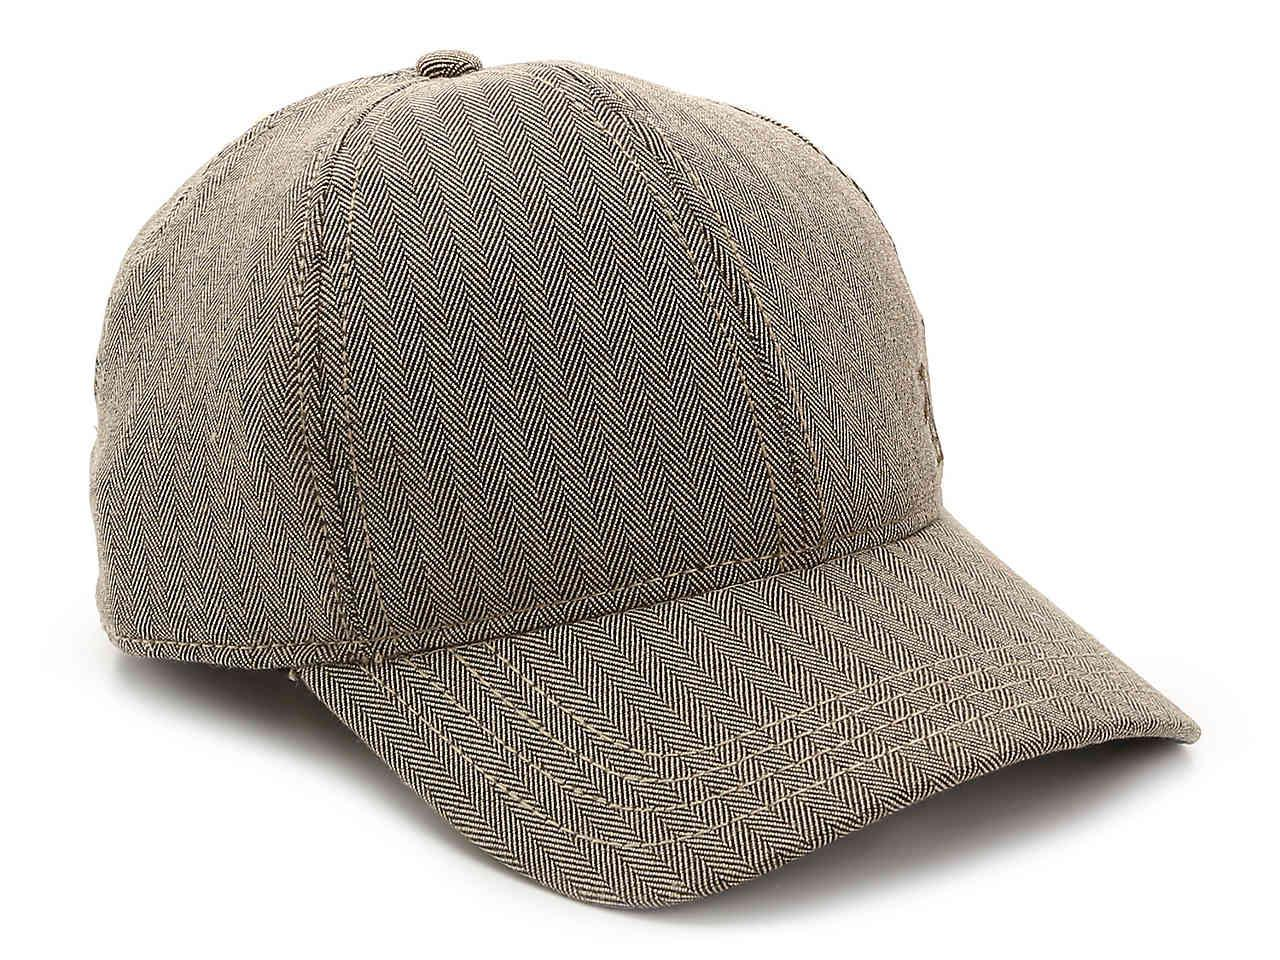 Lyst - Original Penguin Herringbone Baseball Cap in Brown for Men 5792b174447